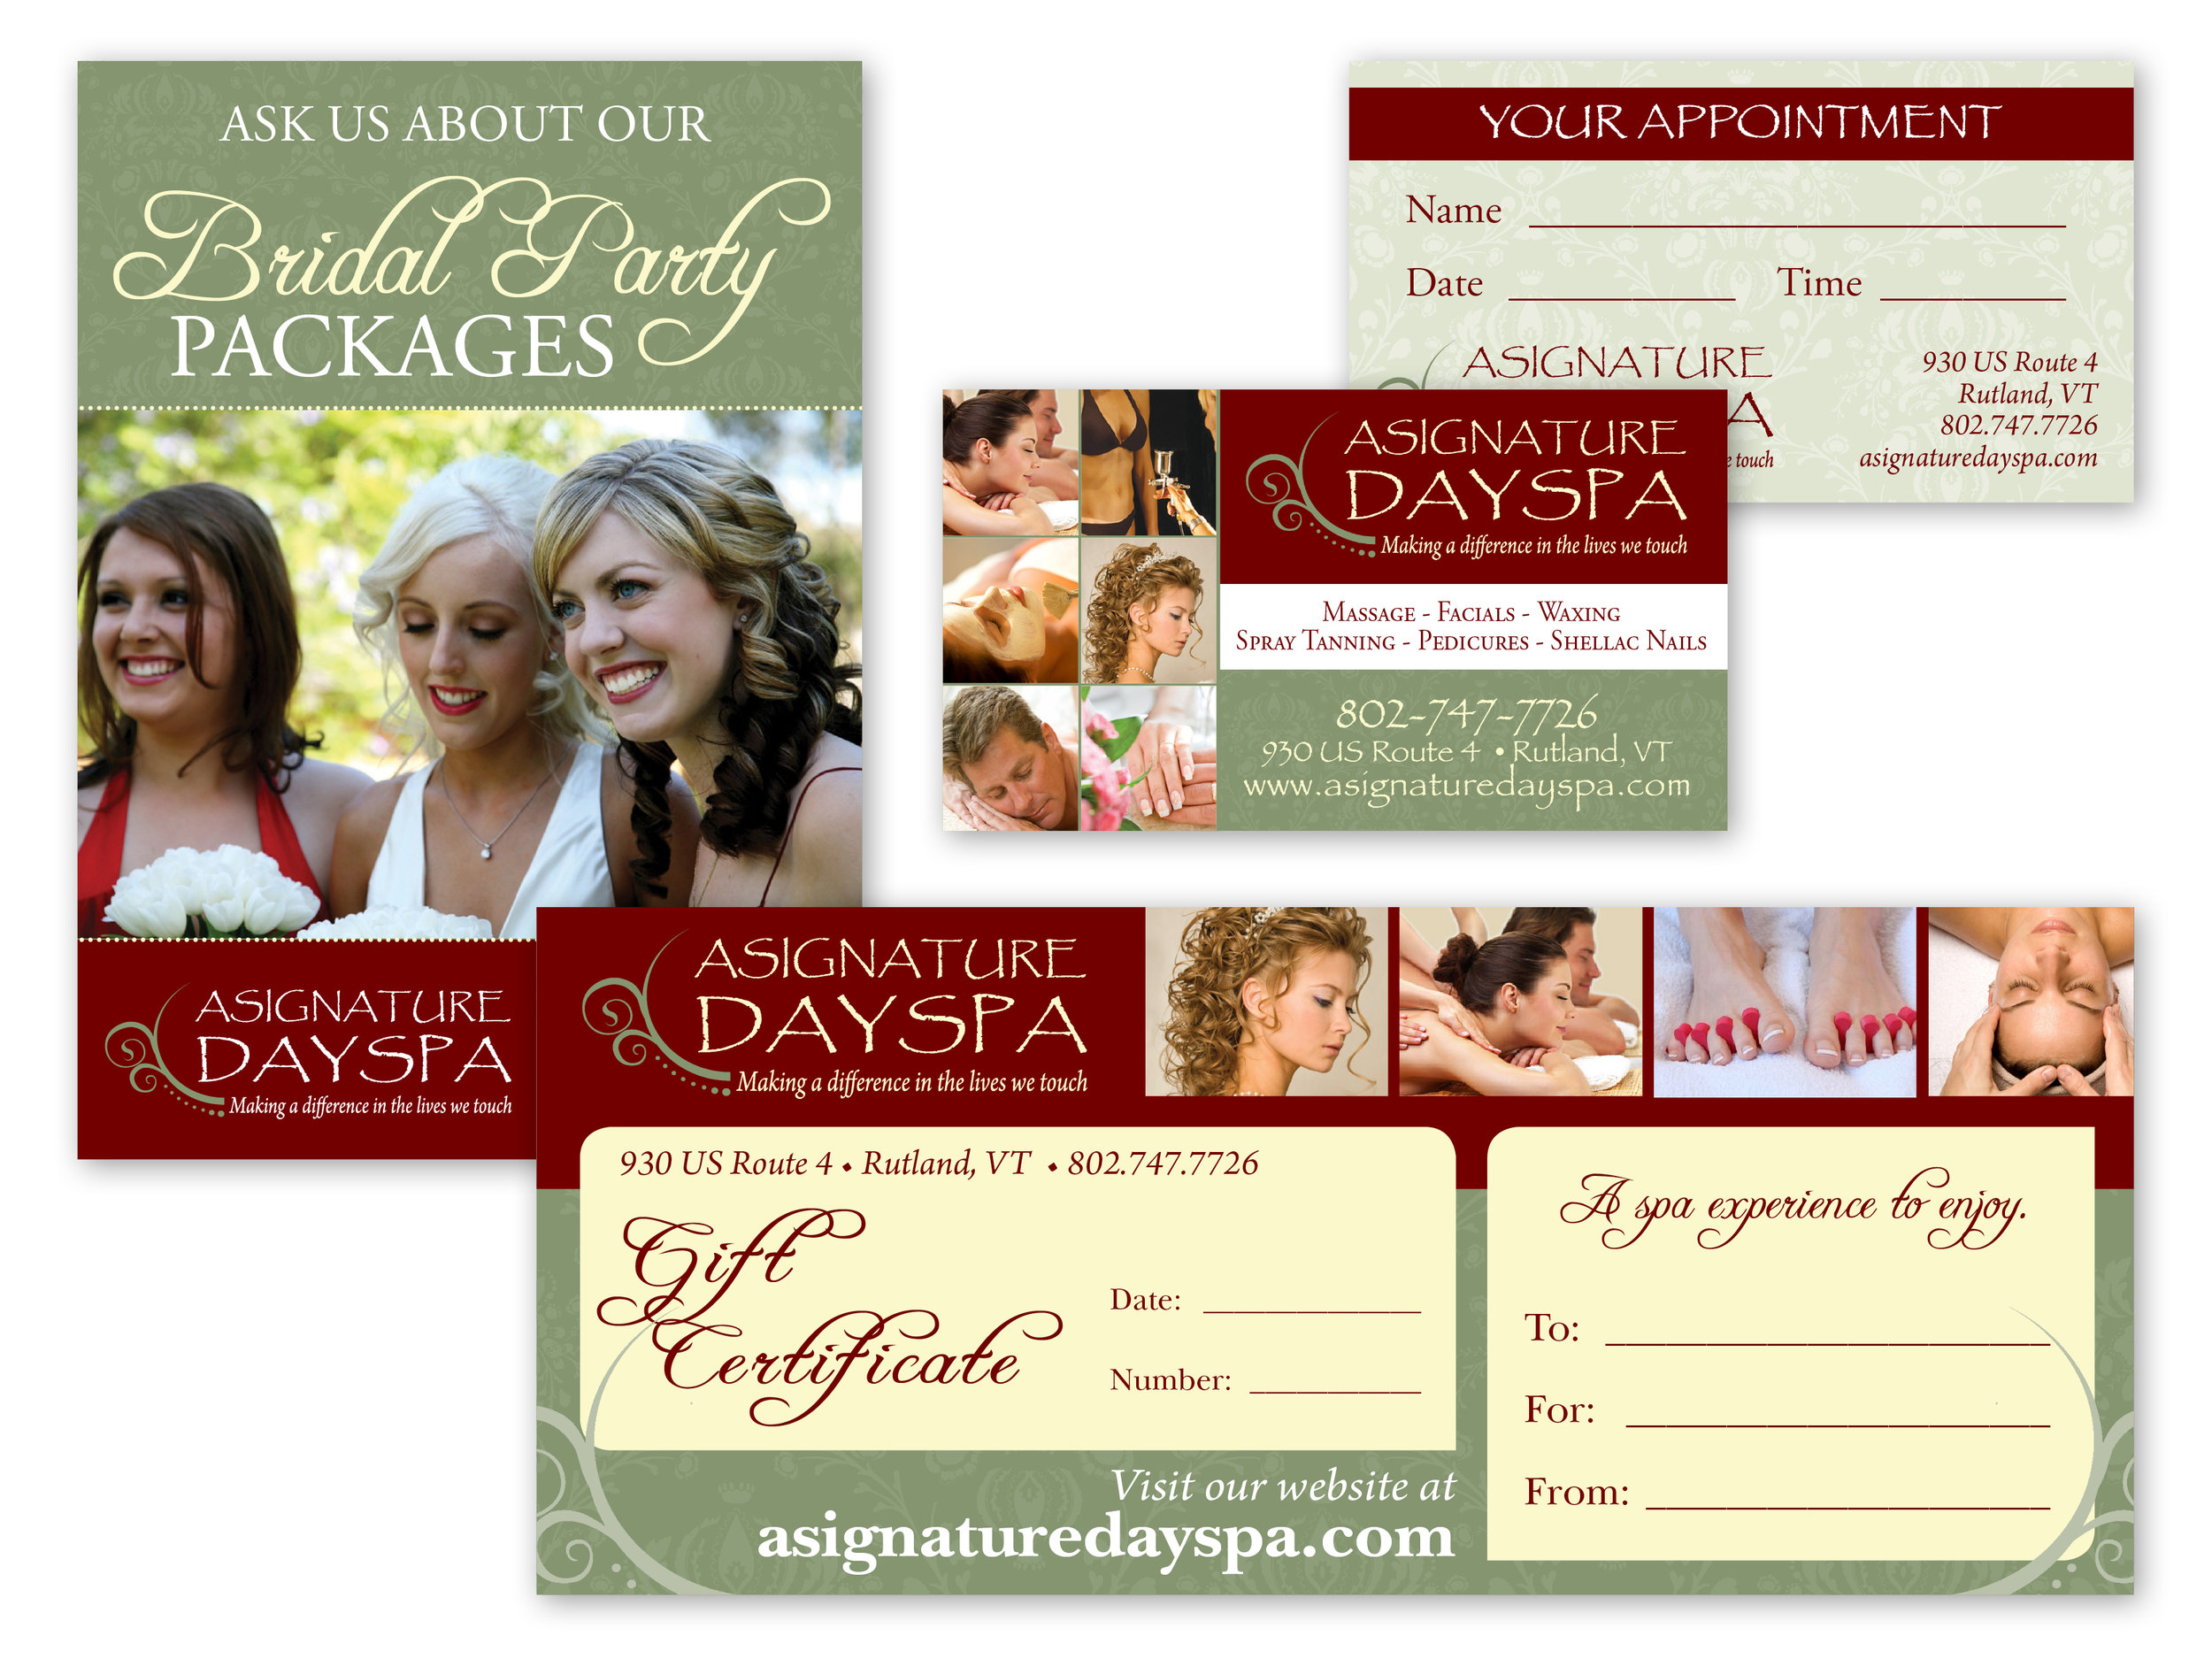 Marketing Materials: Spa Offering Poster, Business/Apt Card, Gift Certificate